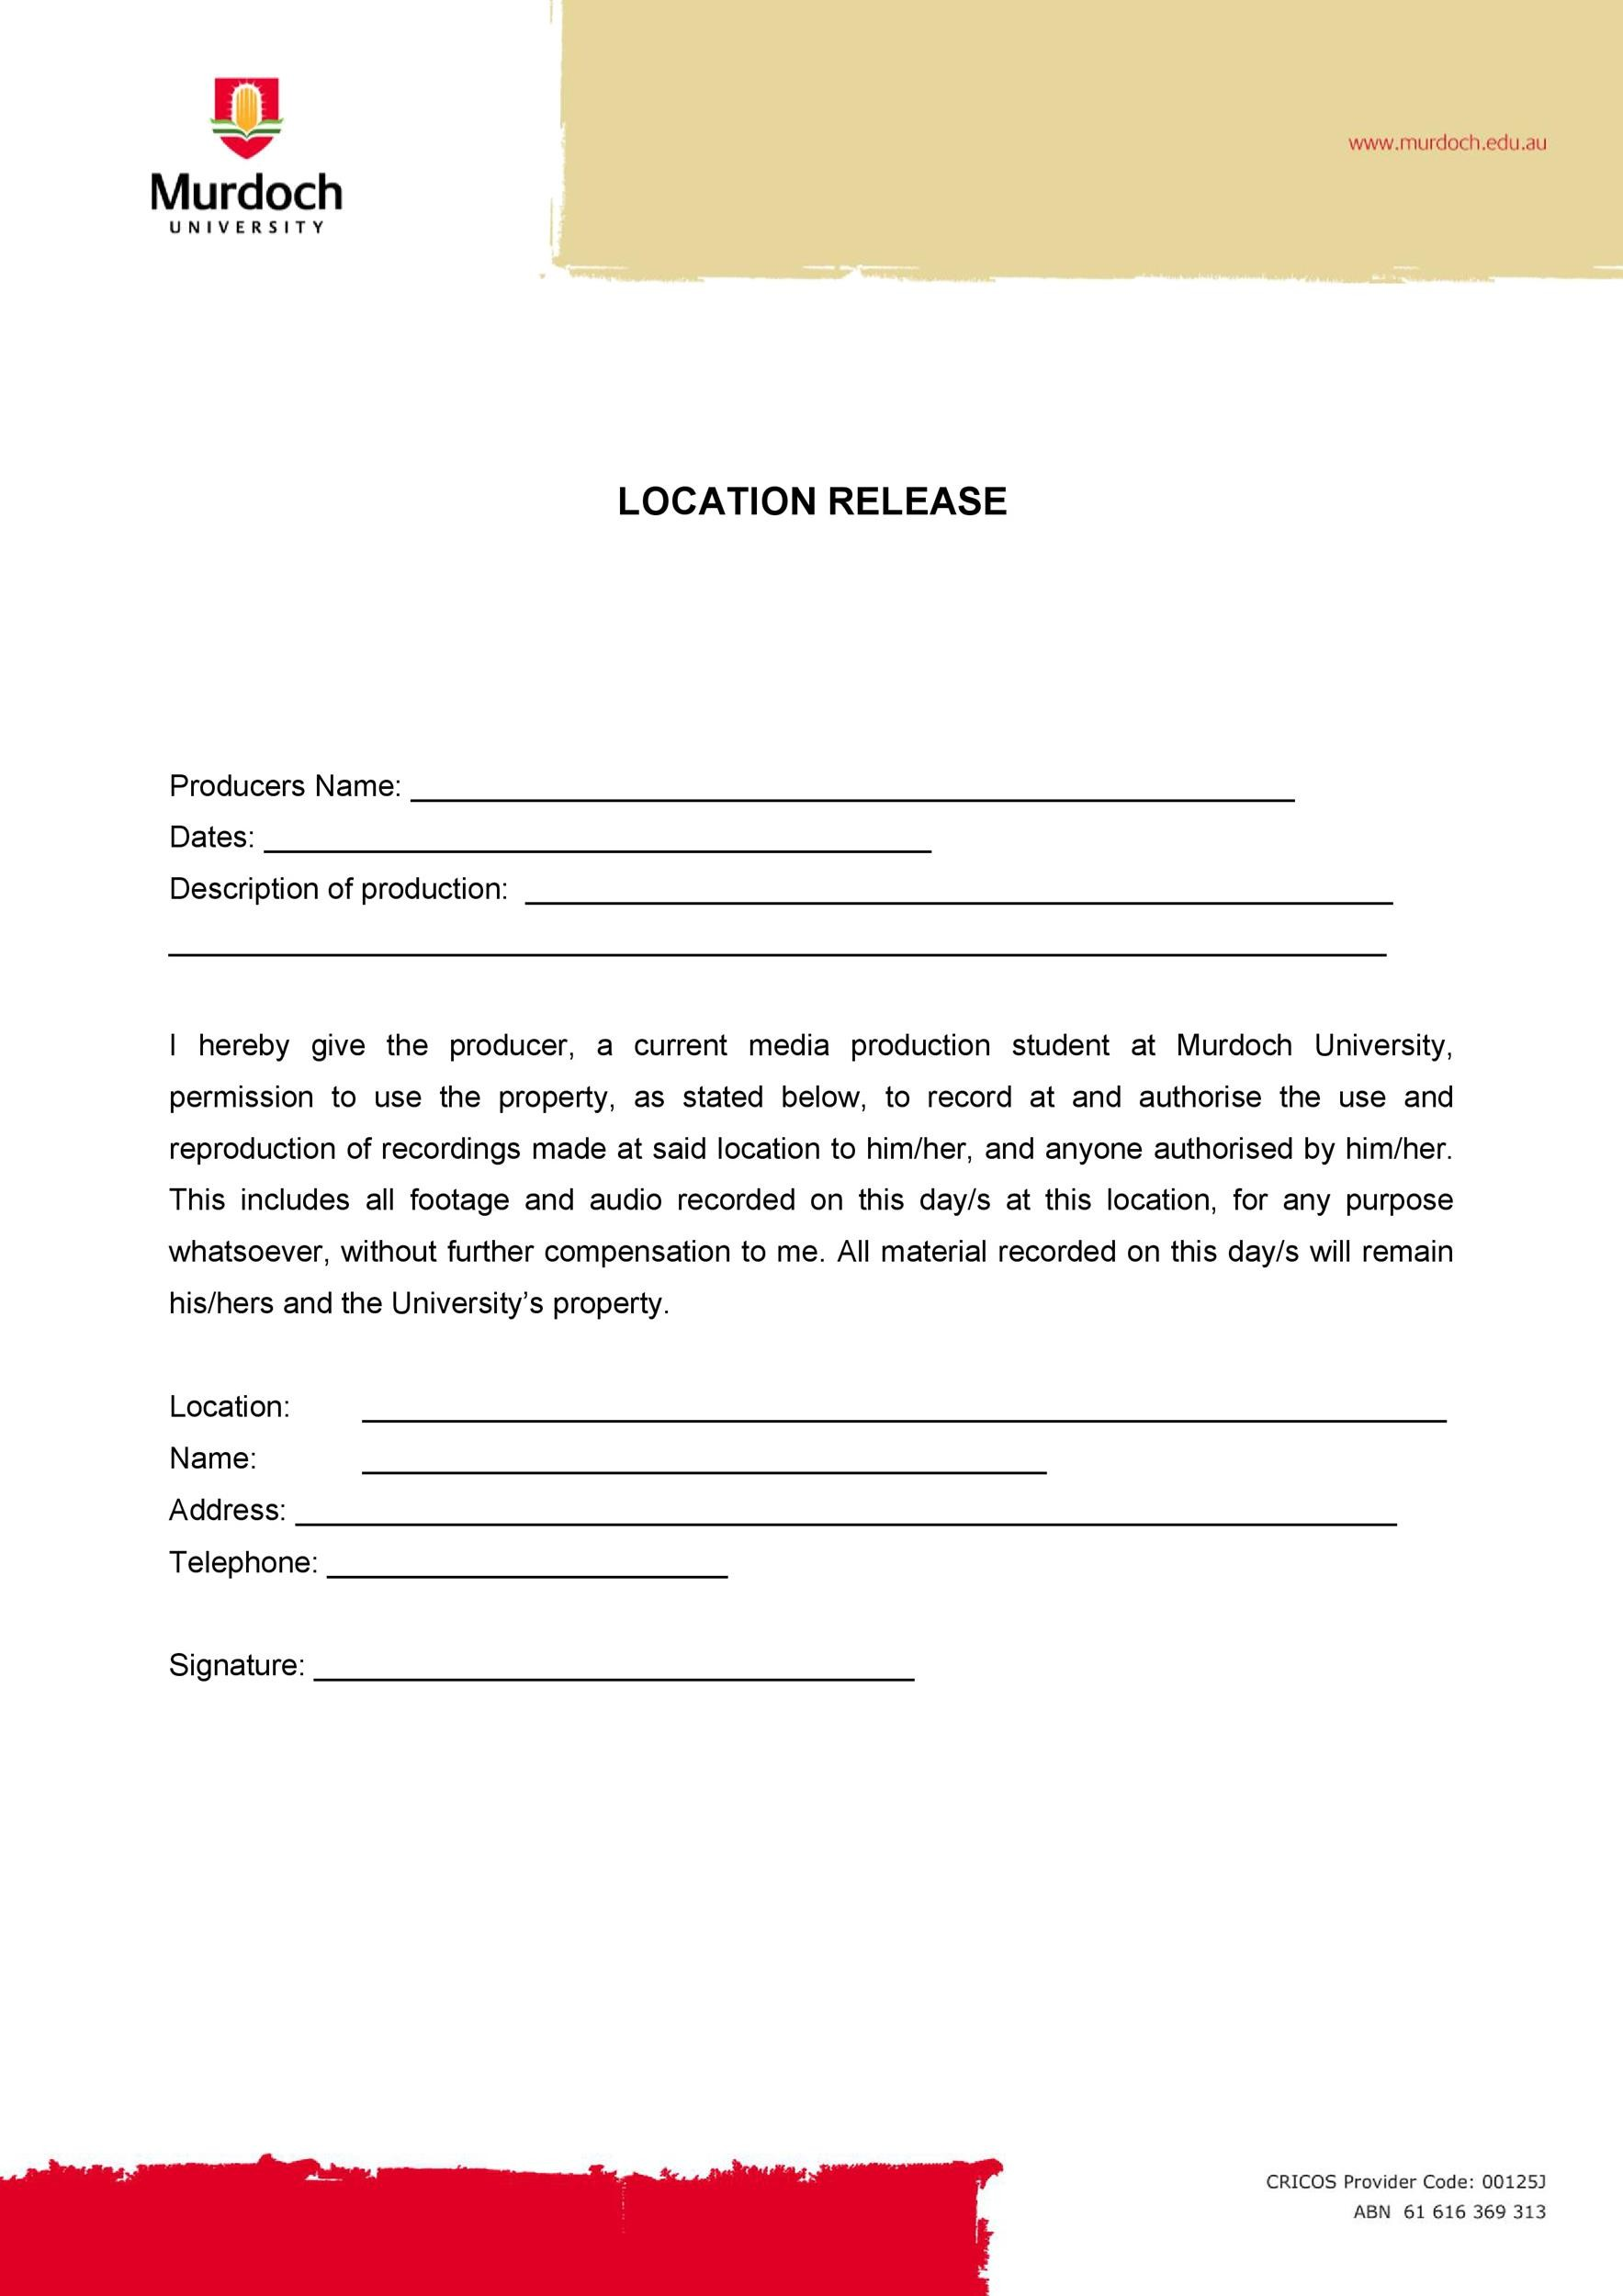 Free location release form 46